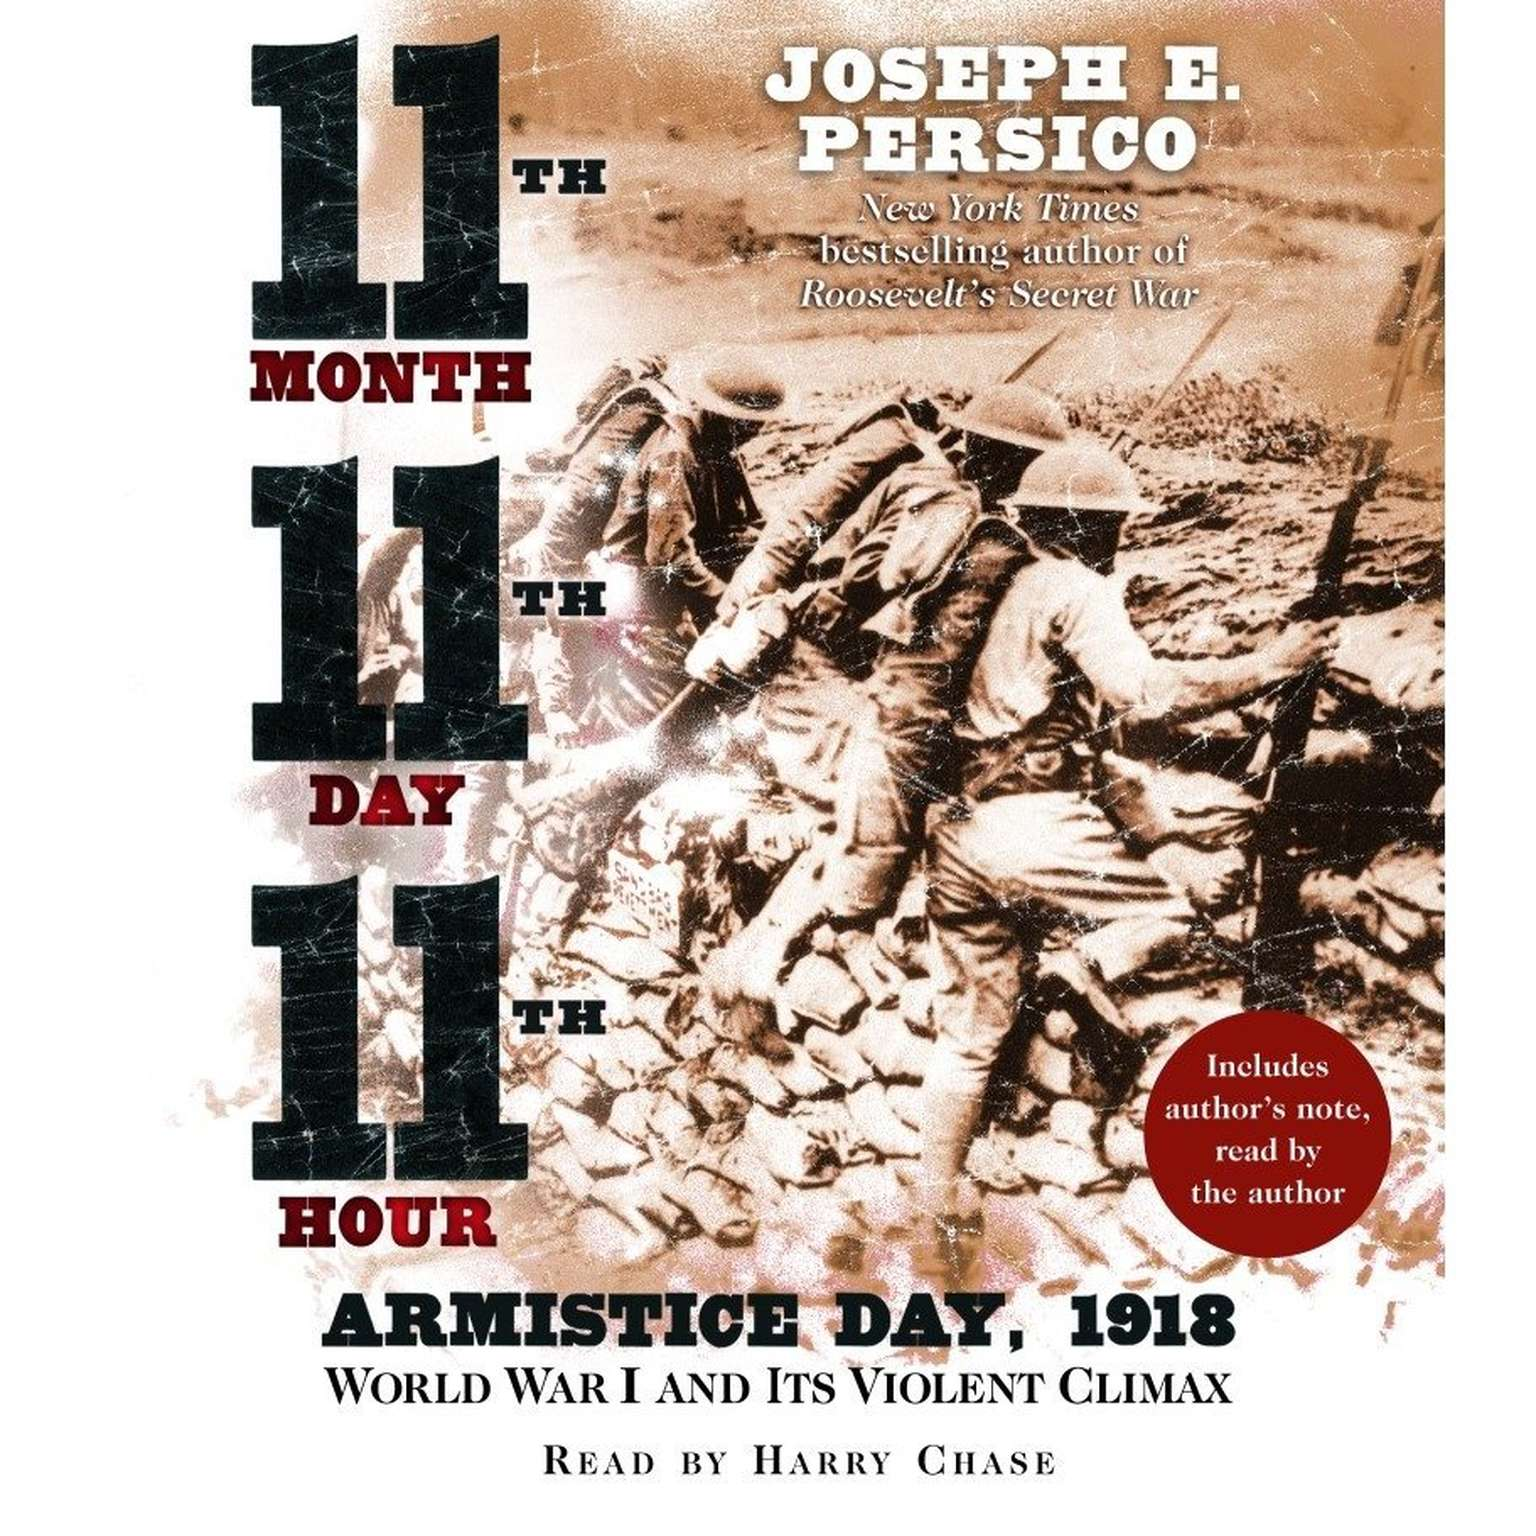 Printable Eleventh Month, Eleventh Day, Eleventh Hour: Armistice Day, 1918 World War I and Its Violent Climax Audiobook Cover Art